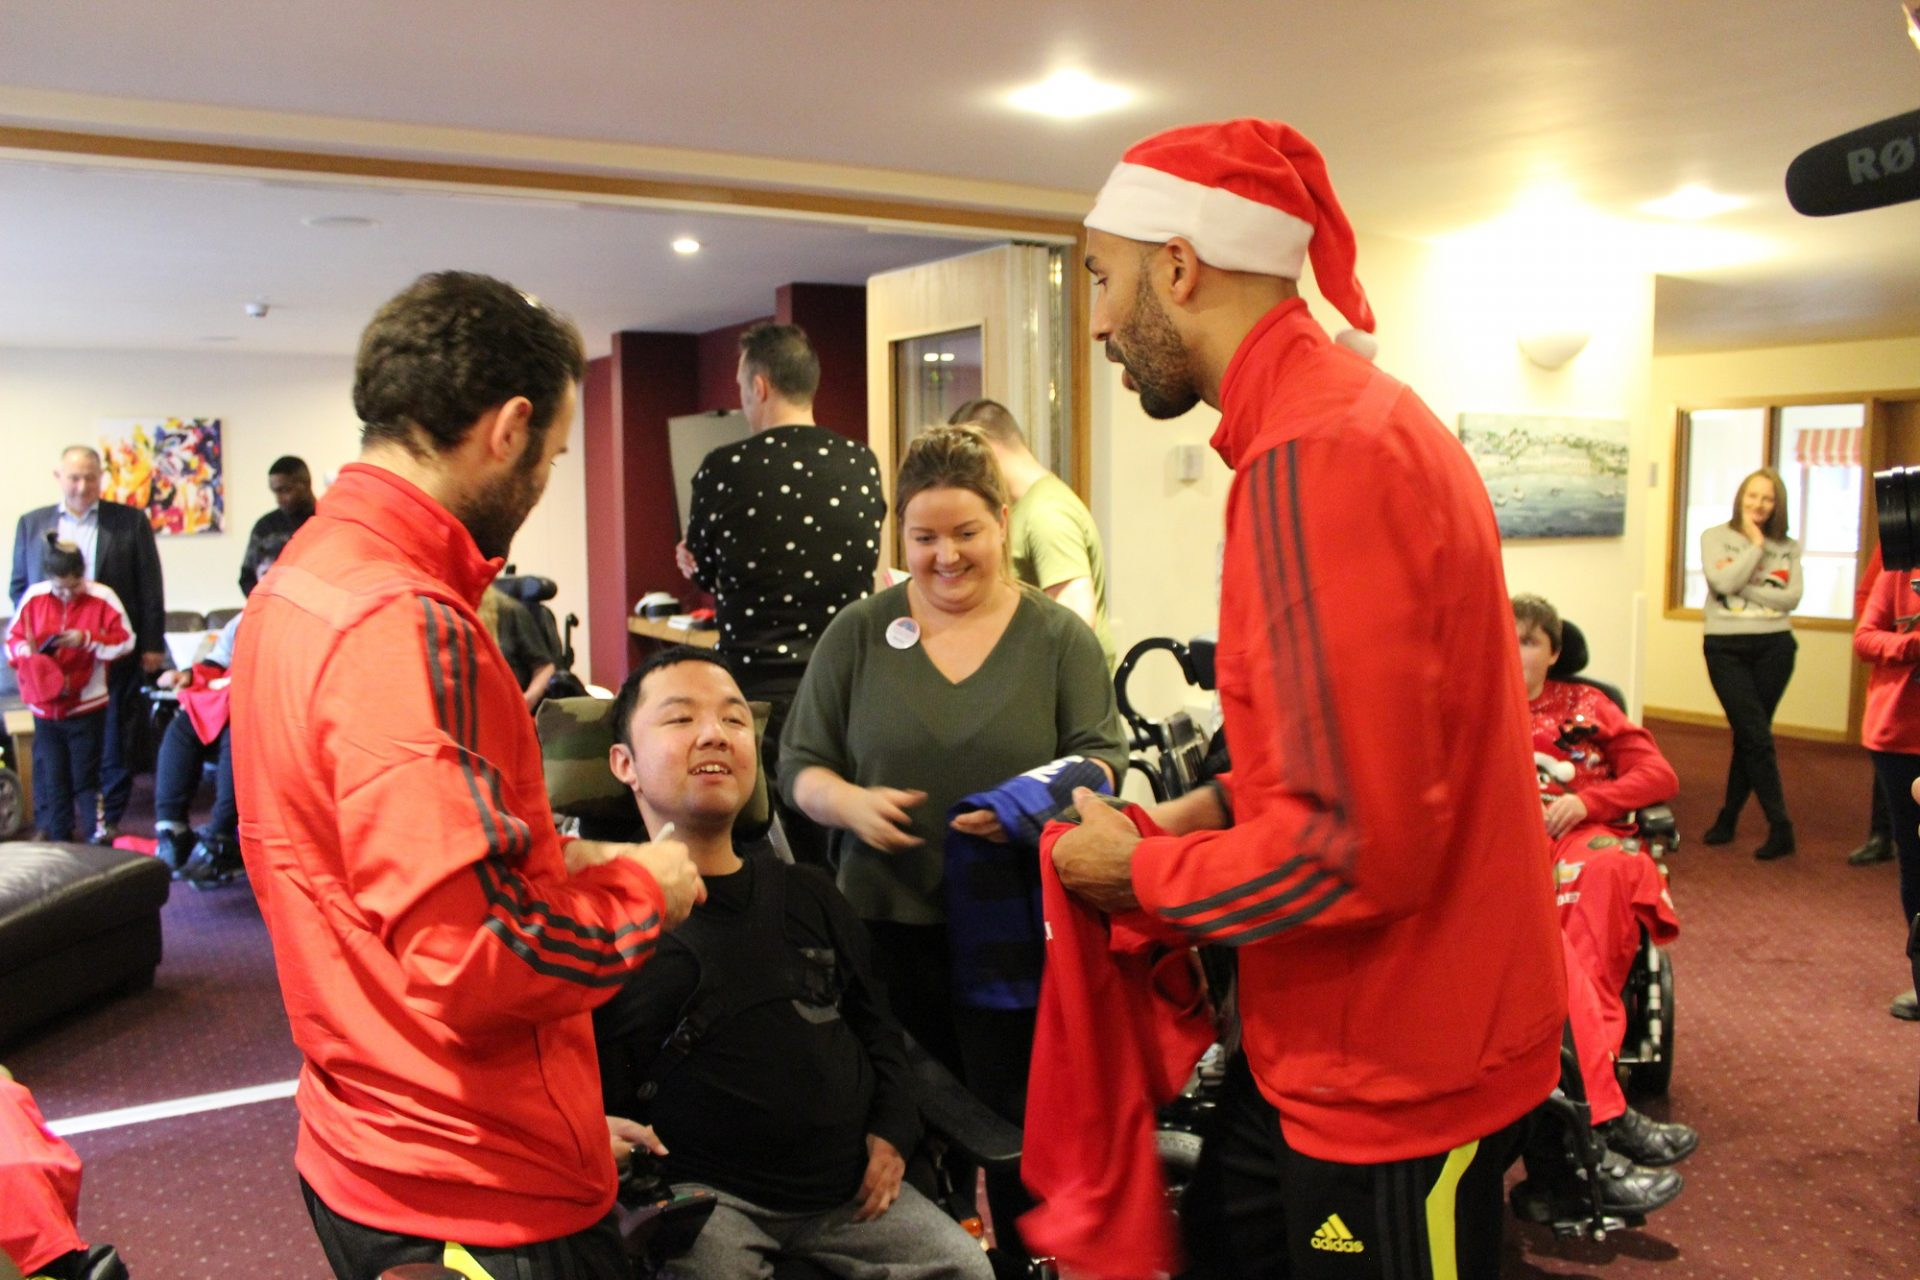 Manchester United players at Francis House